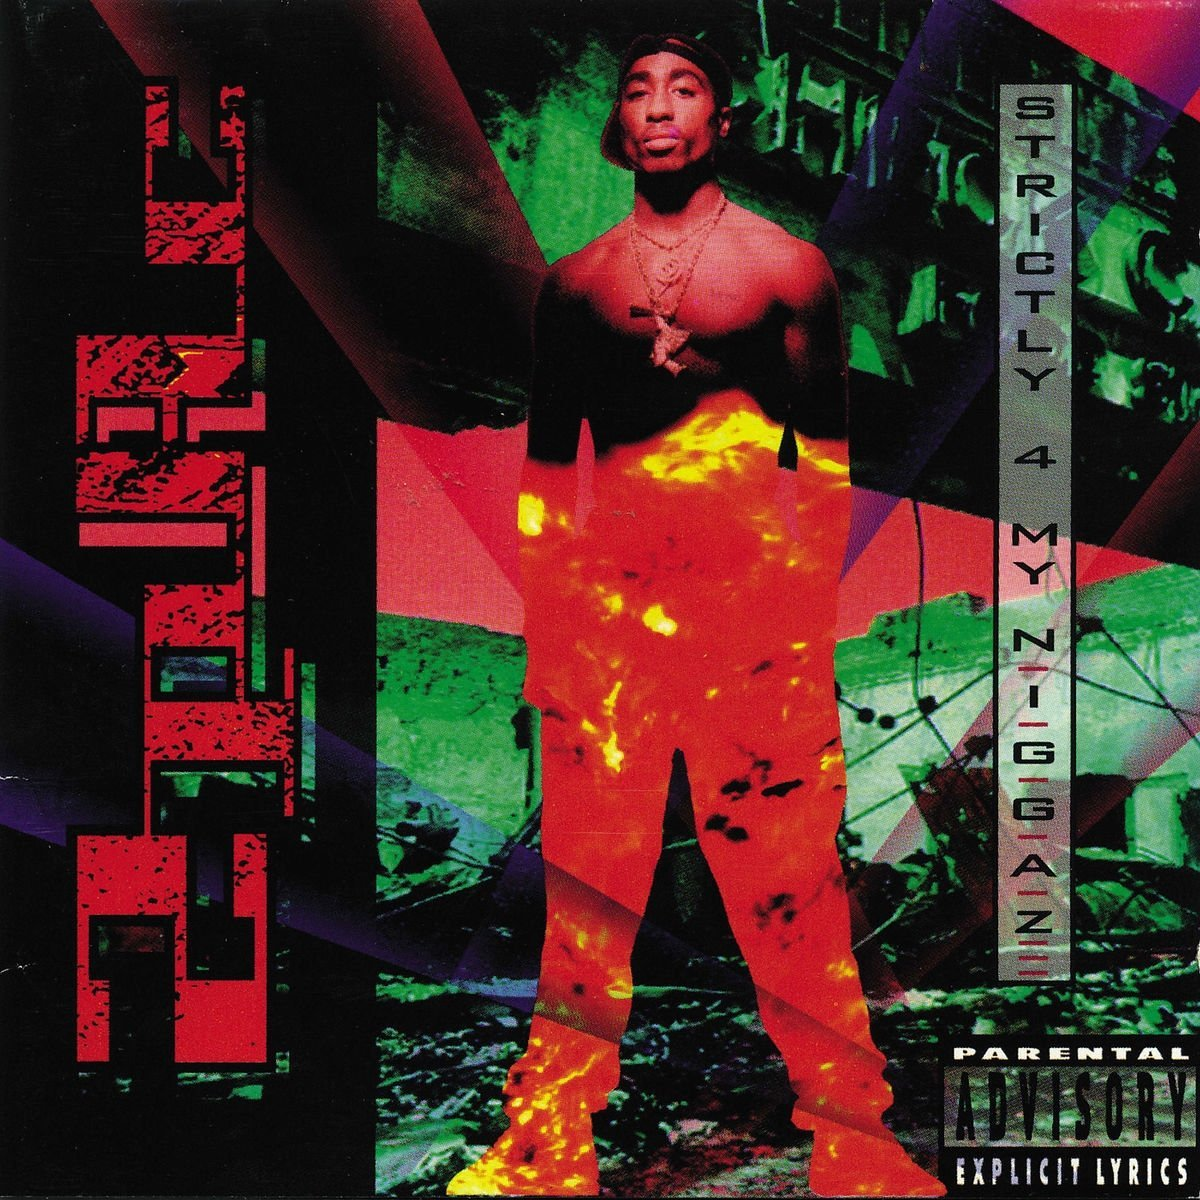 2Pac - Strictly 4 My N.I.G.G.A.Z... [LP]